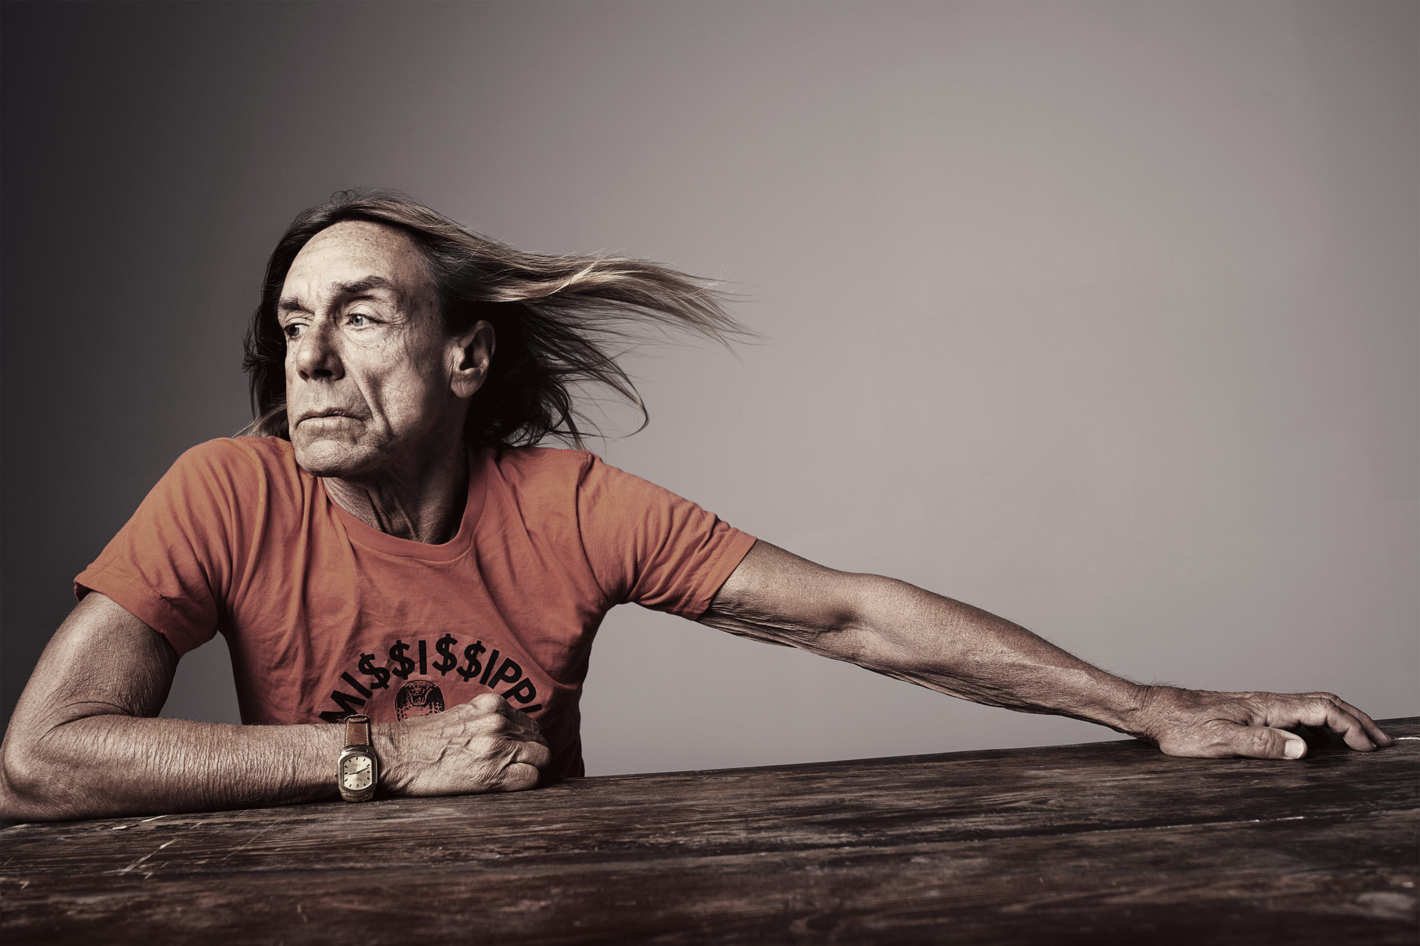 68-year-old Iggy Pop did not hesitate to become a nude model 03/01/2016 27